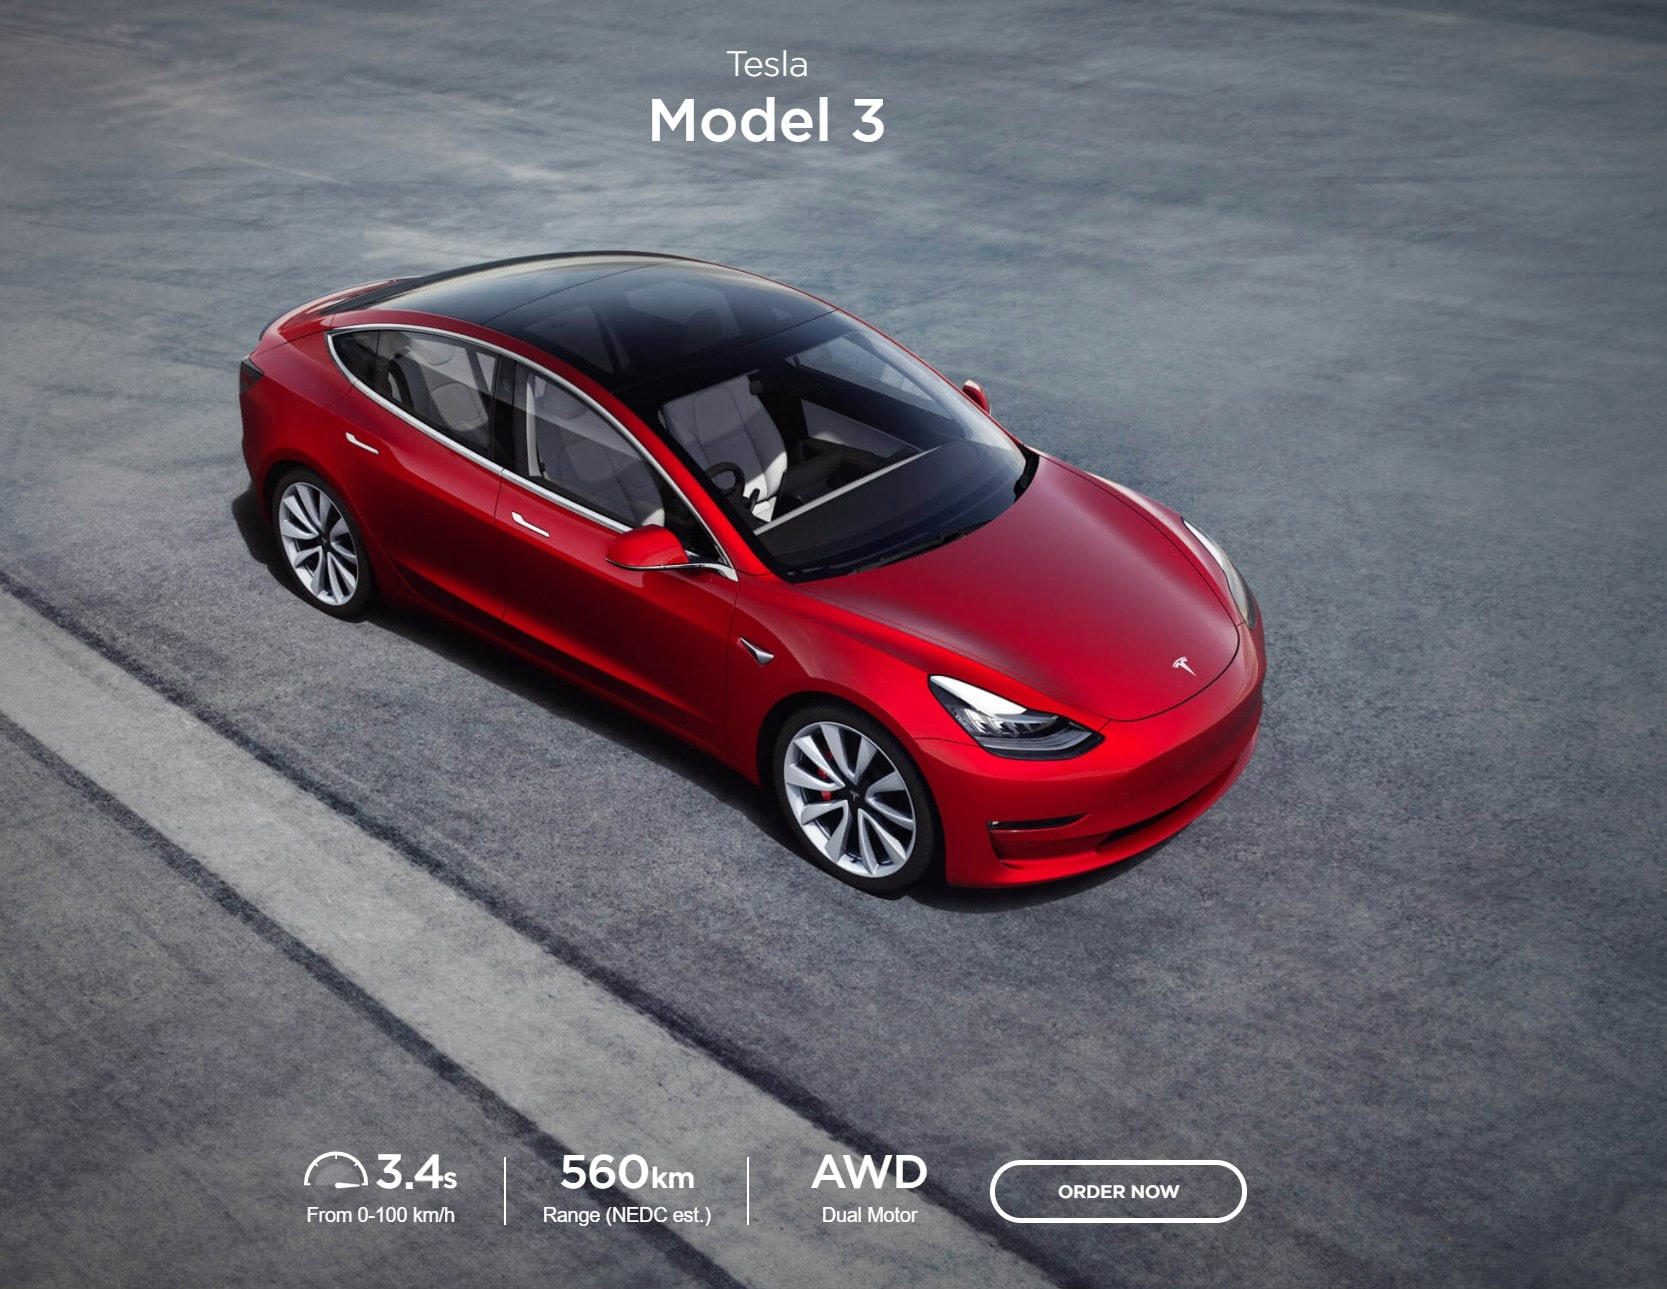 Tesla Model 3 order is now live for Australia, pricing starts from $71,285 Drive Away Price